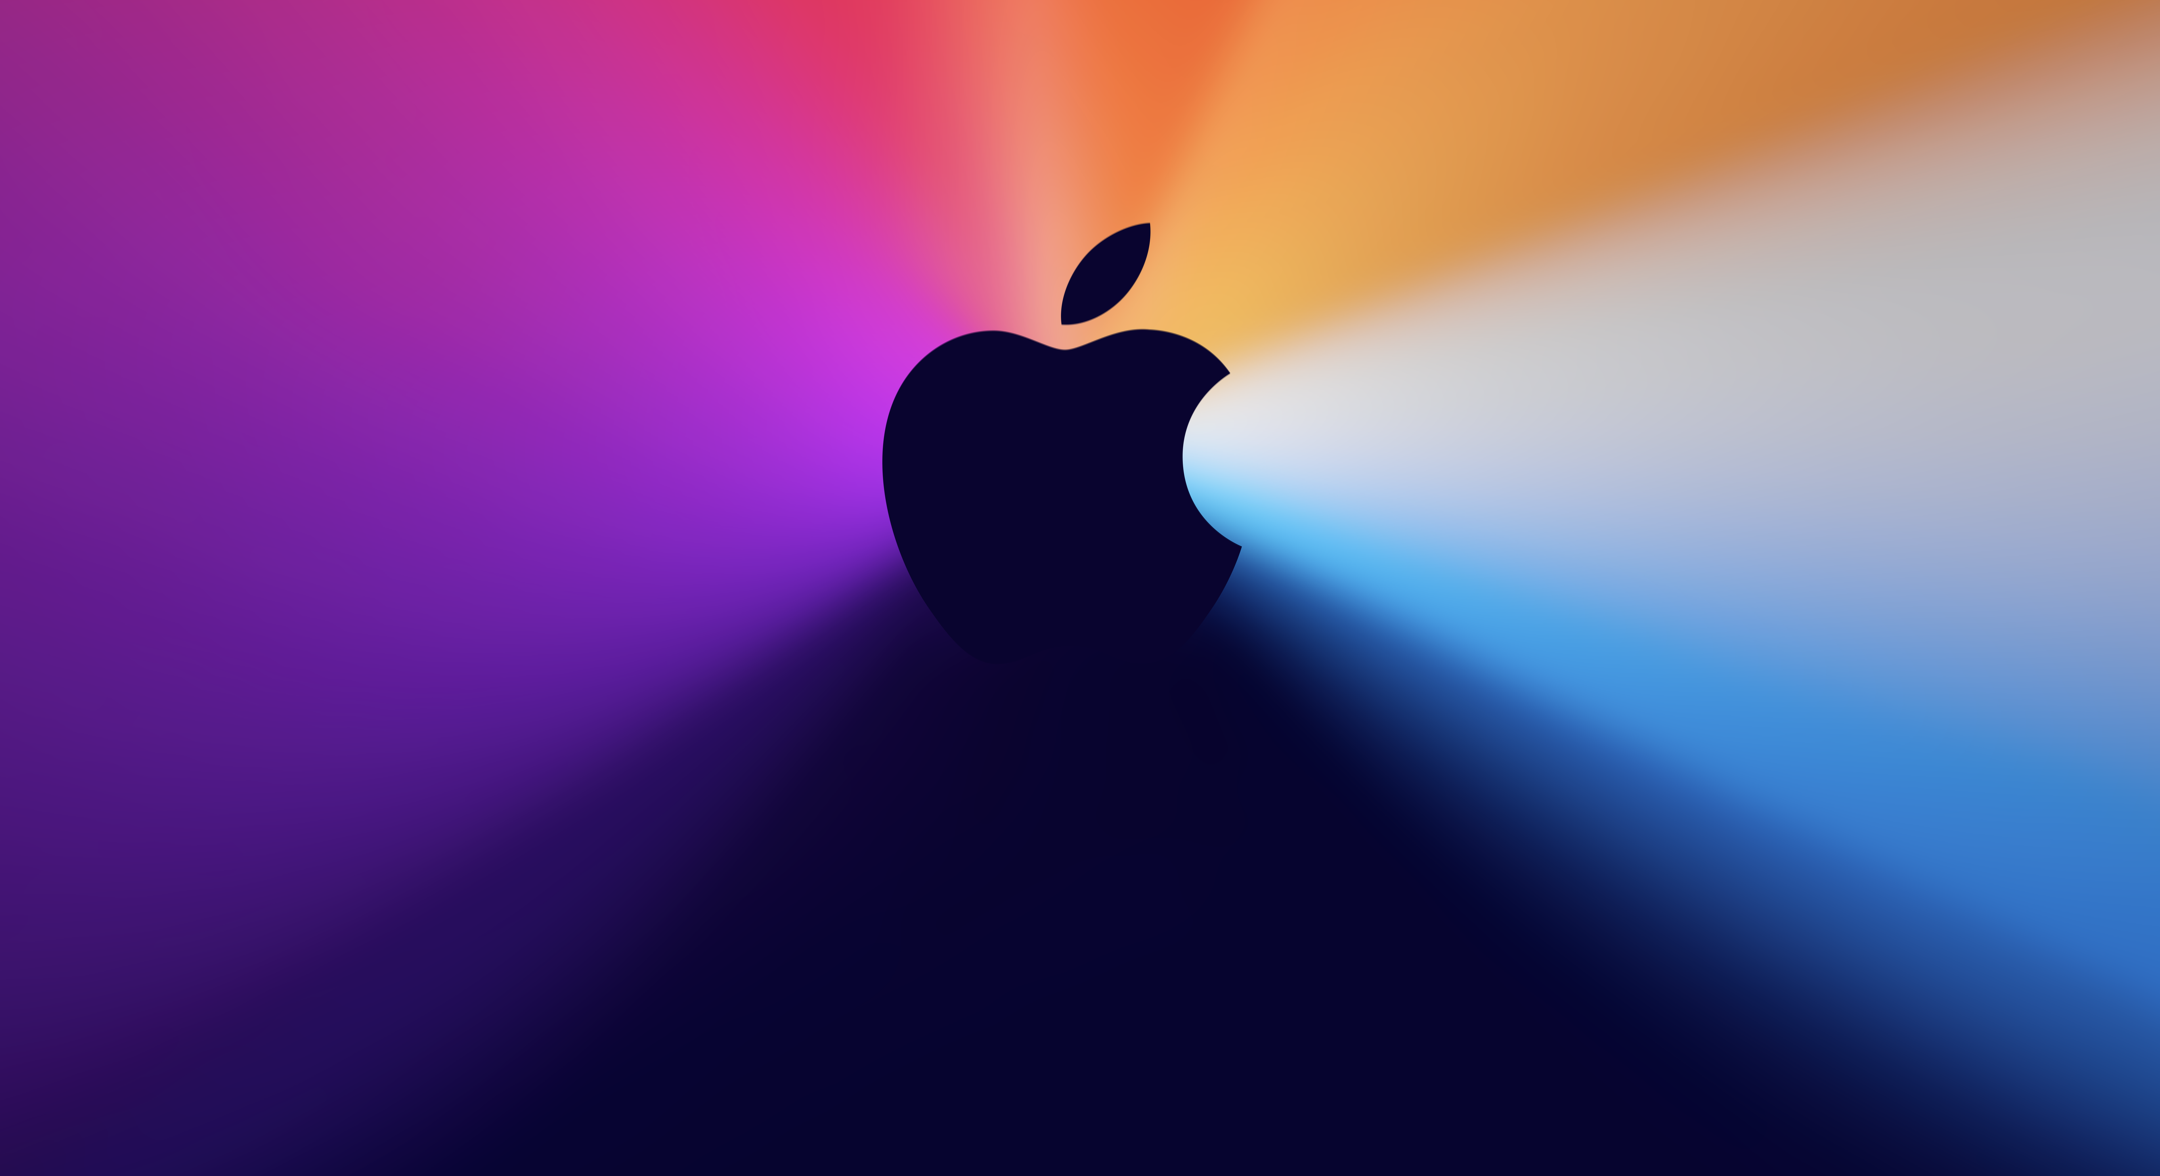 March 23 Apple Rumored Event to Unveil New iPad Pro, AirPods 3, and AirTags